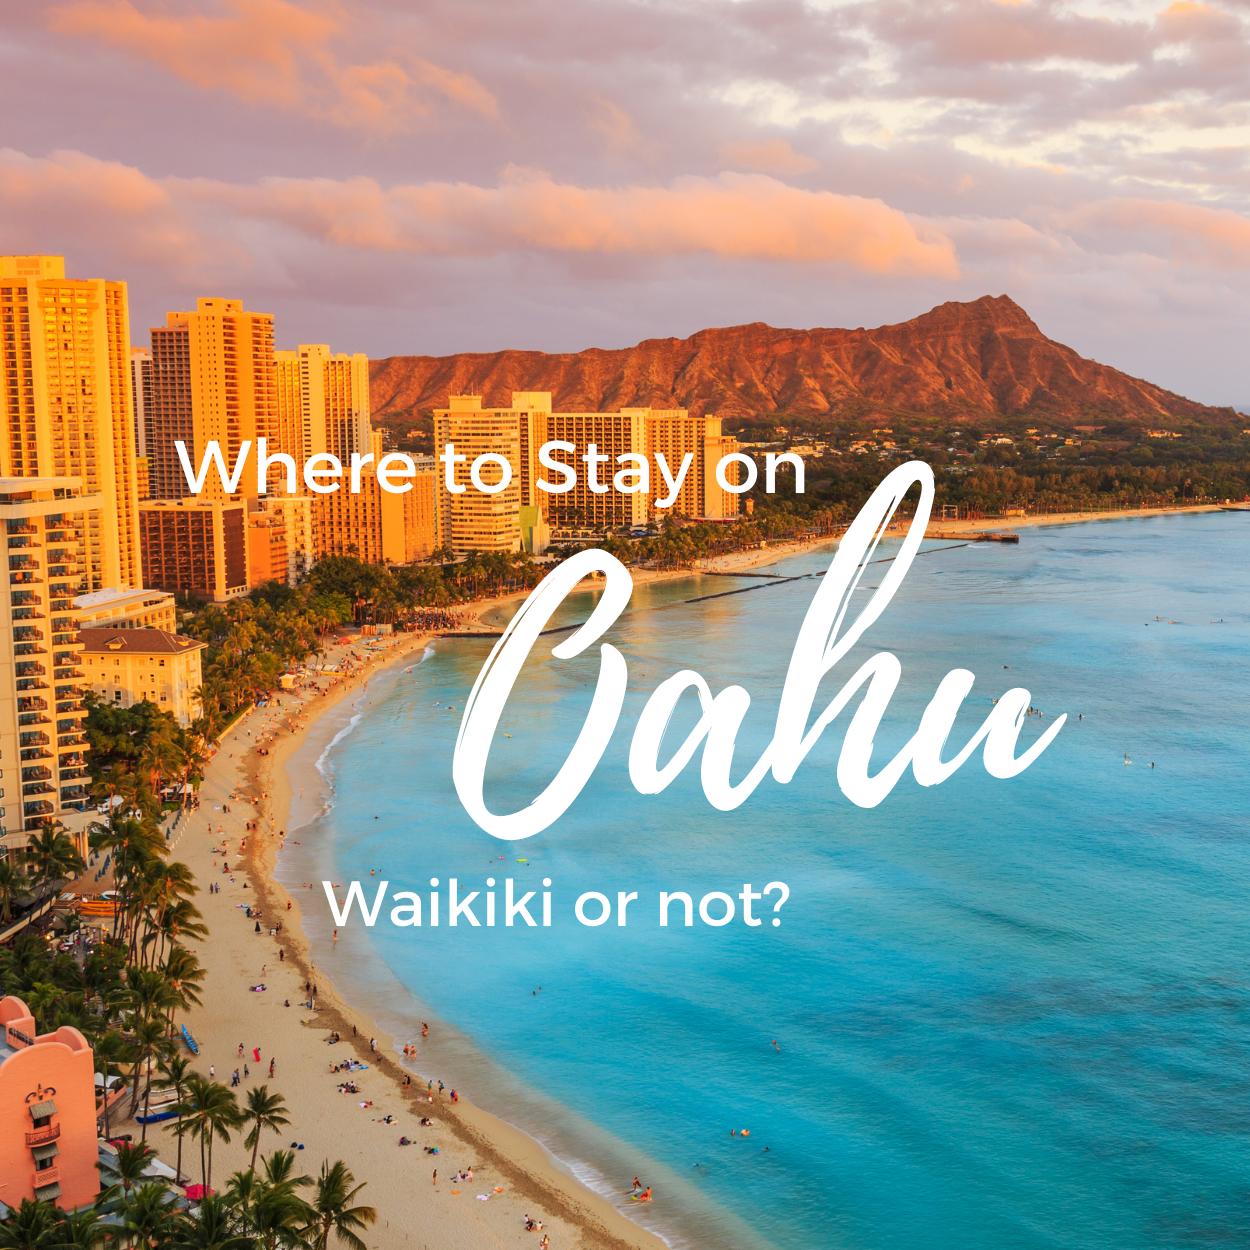 Where to Stay in Oahu: Waikiki or Not?